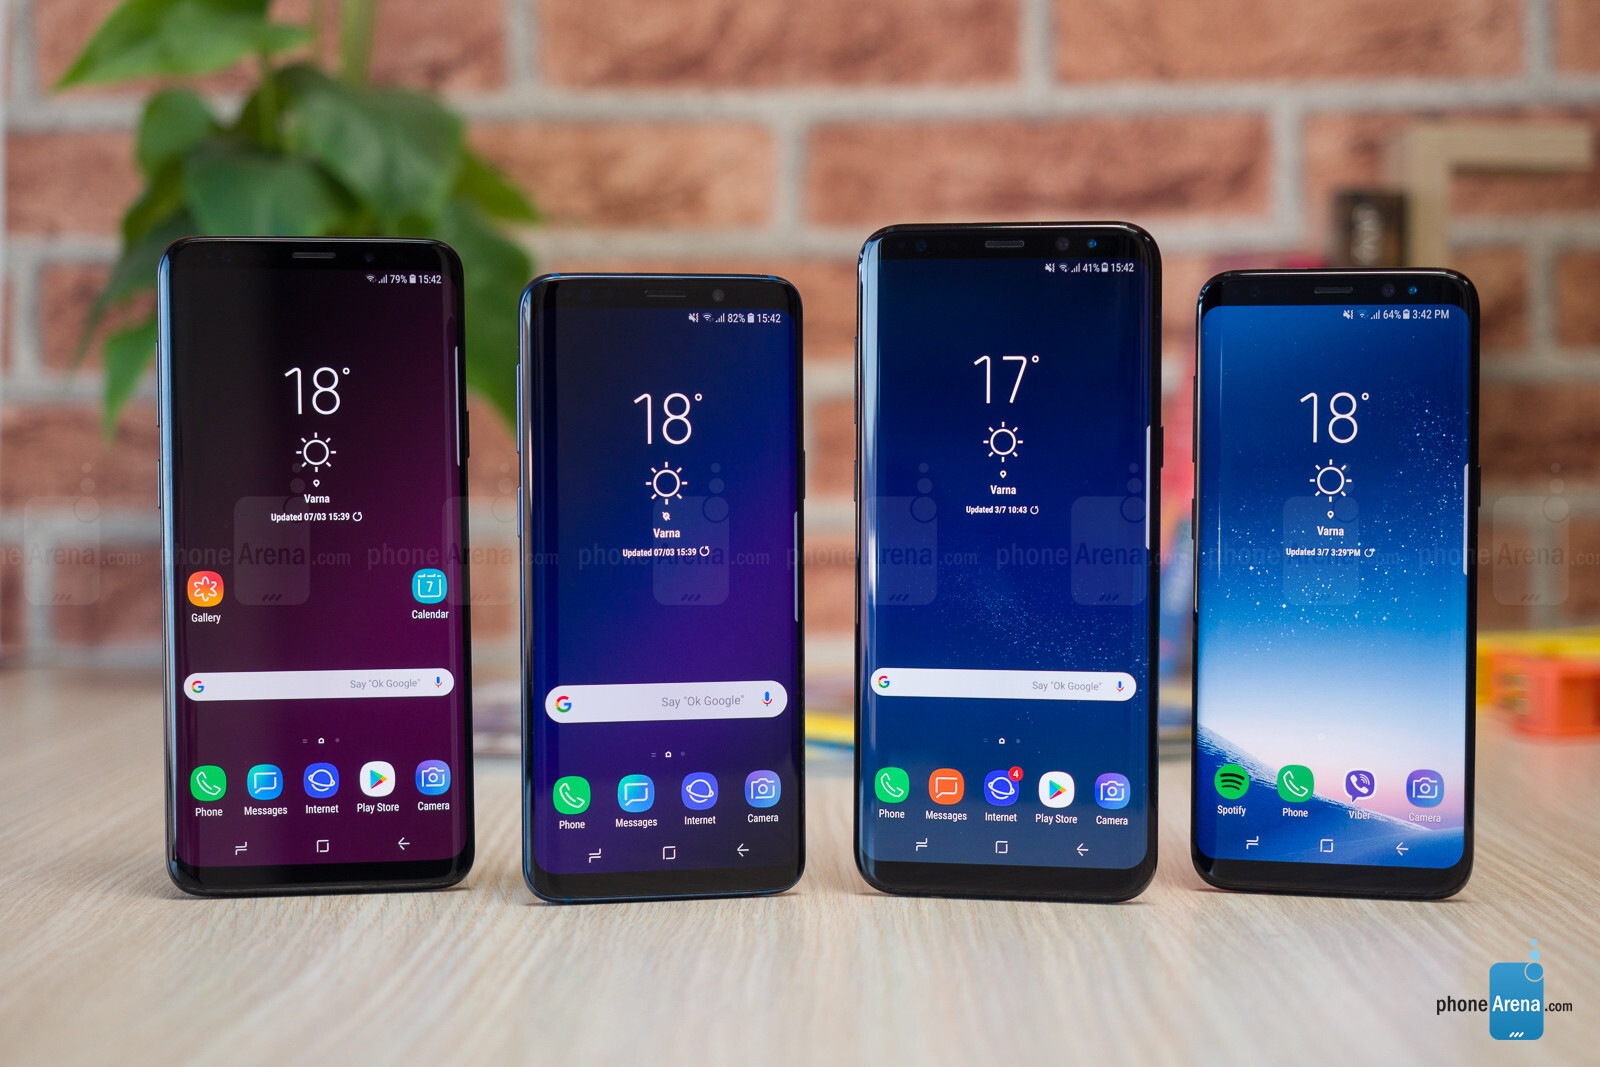 Samsung Galaxy S9 and S9+ vs Galaxy S8 and S8+ - PhoneArena